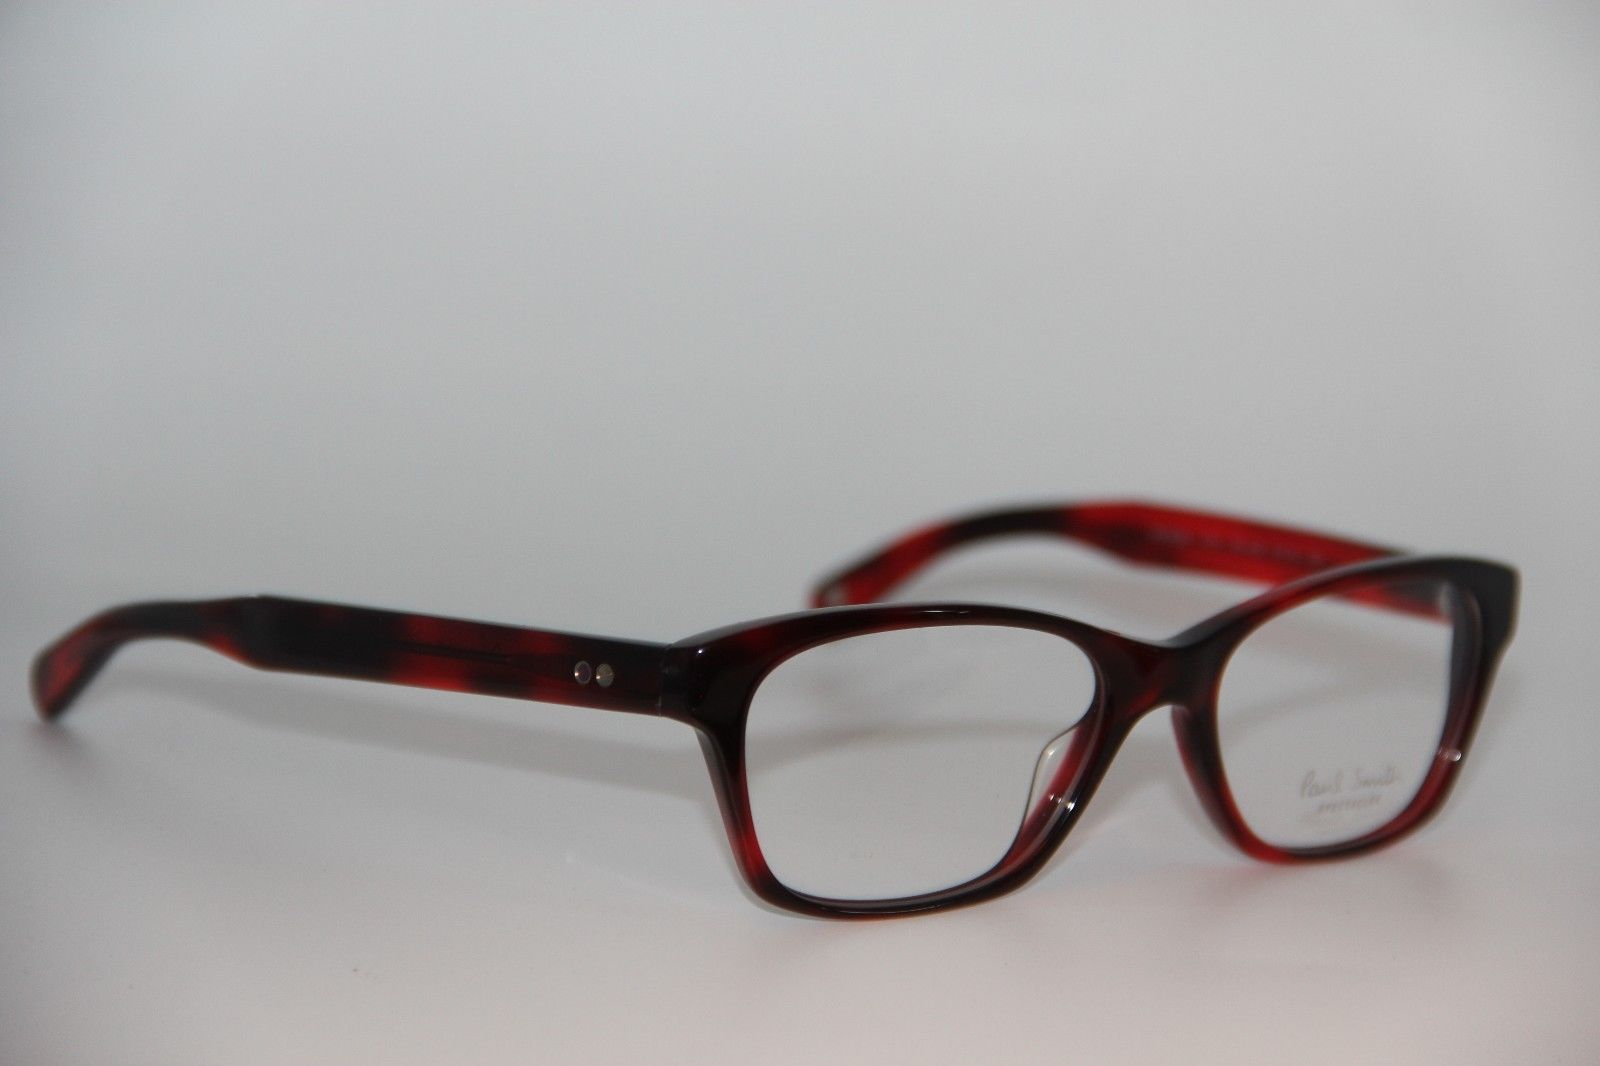 5657f7cd47 NEW PAUL SMITH PM 8056 1176 PS-423 HAVANA EYEGLASSES AUTHENTIC RX PM8056 51-